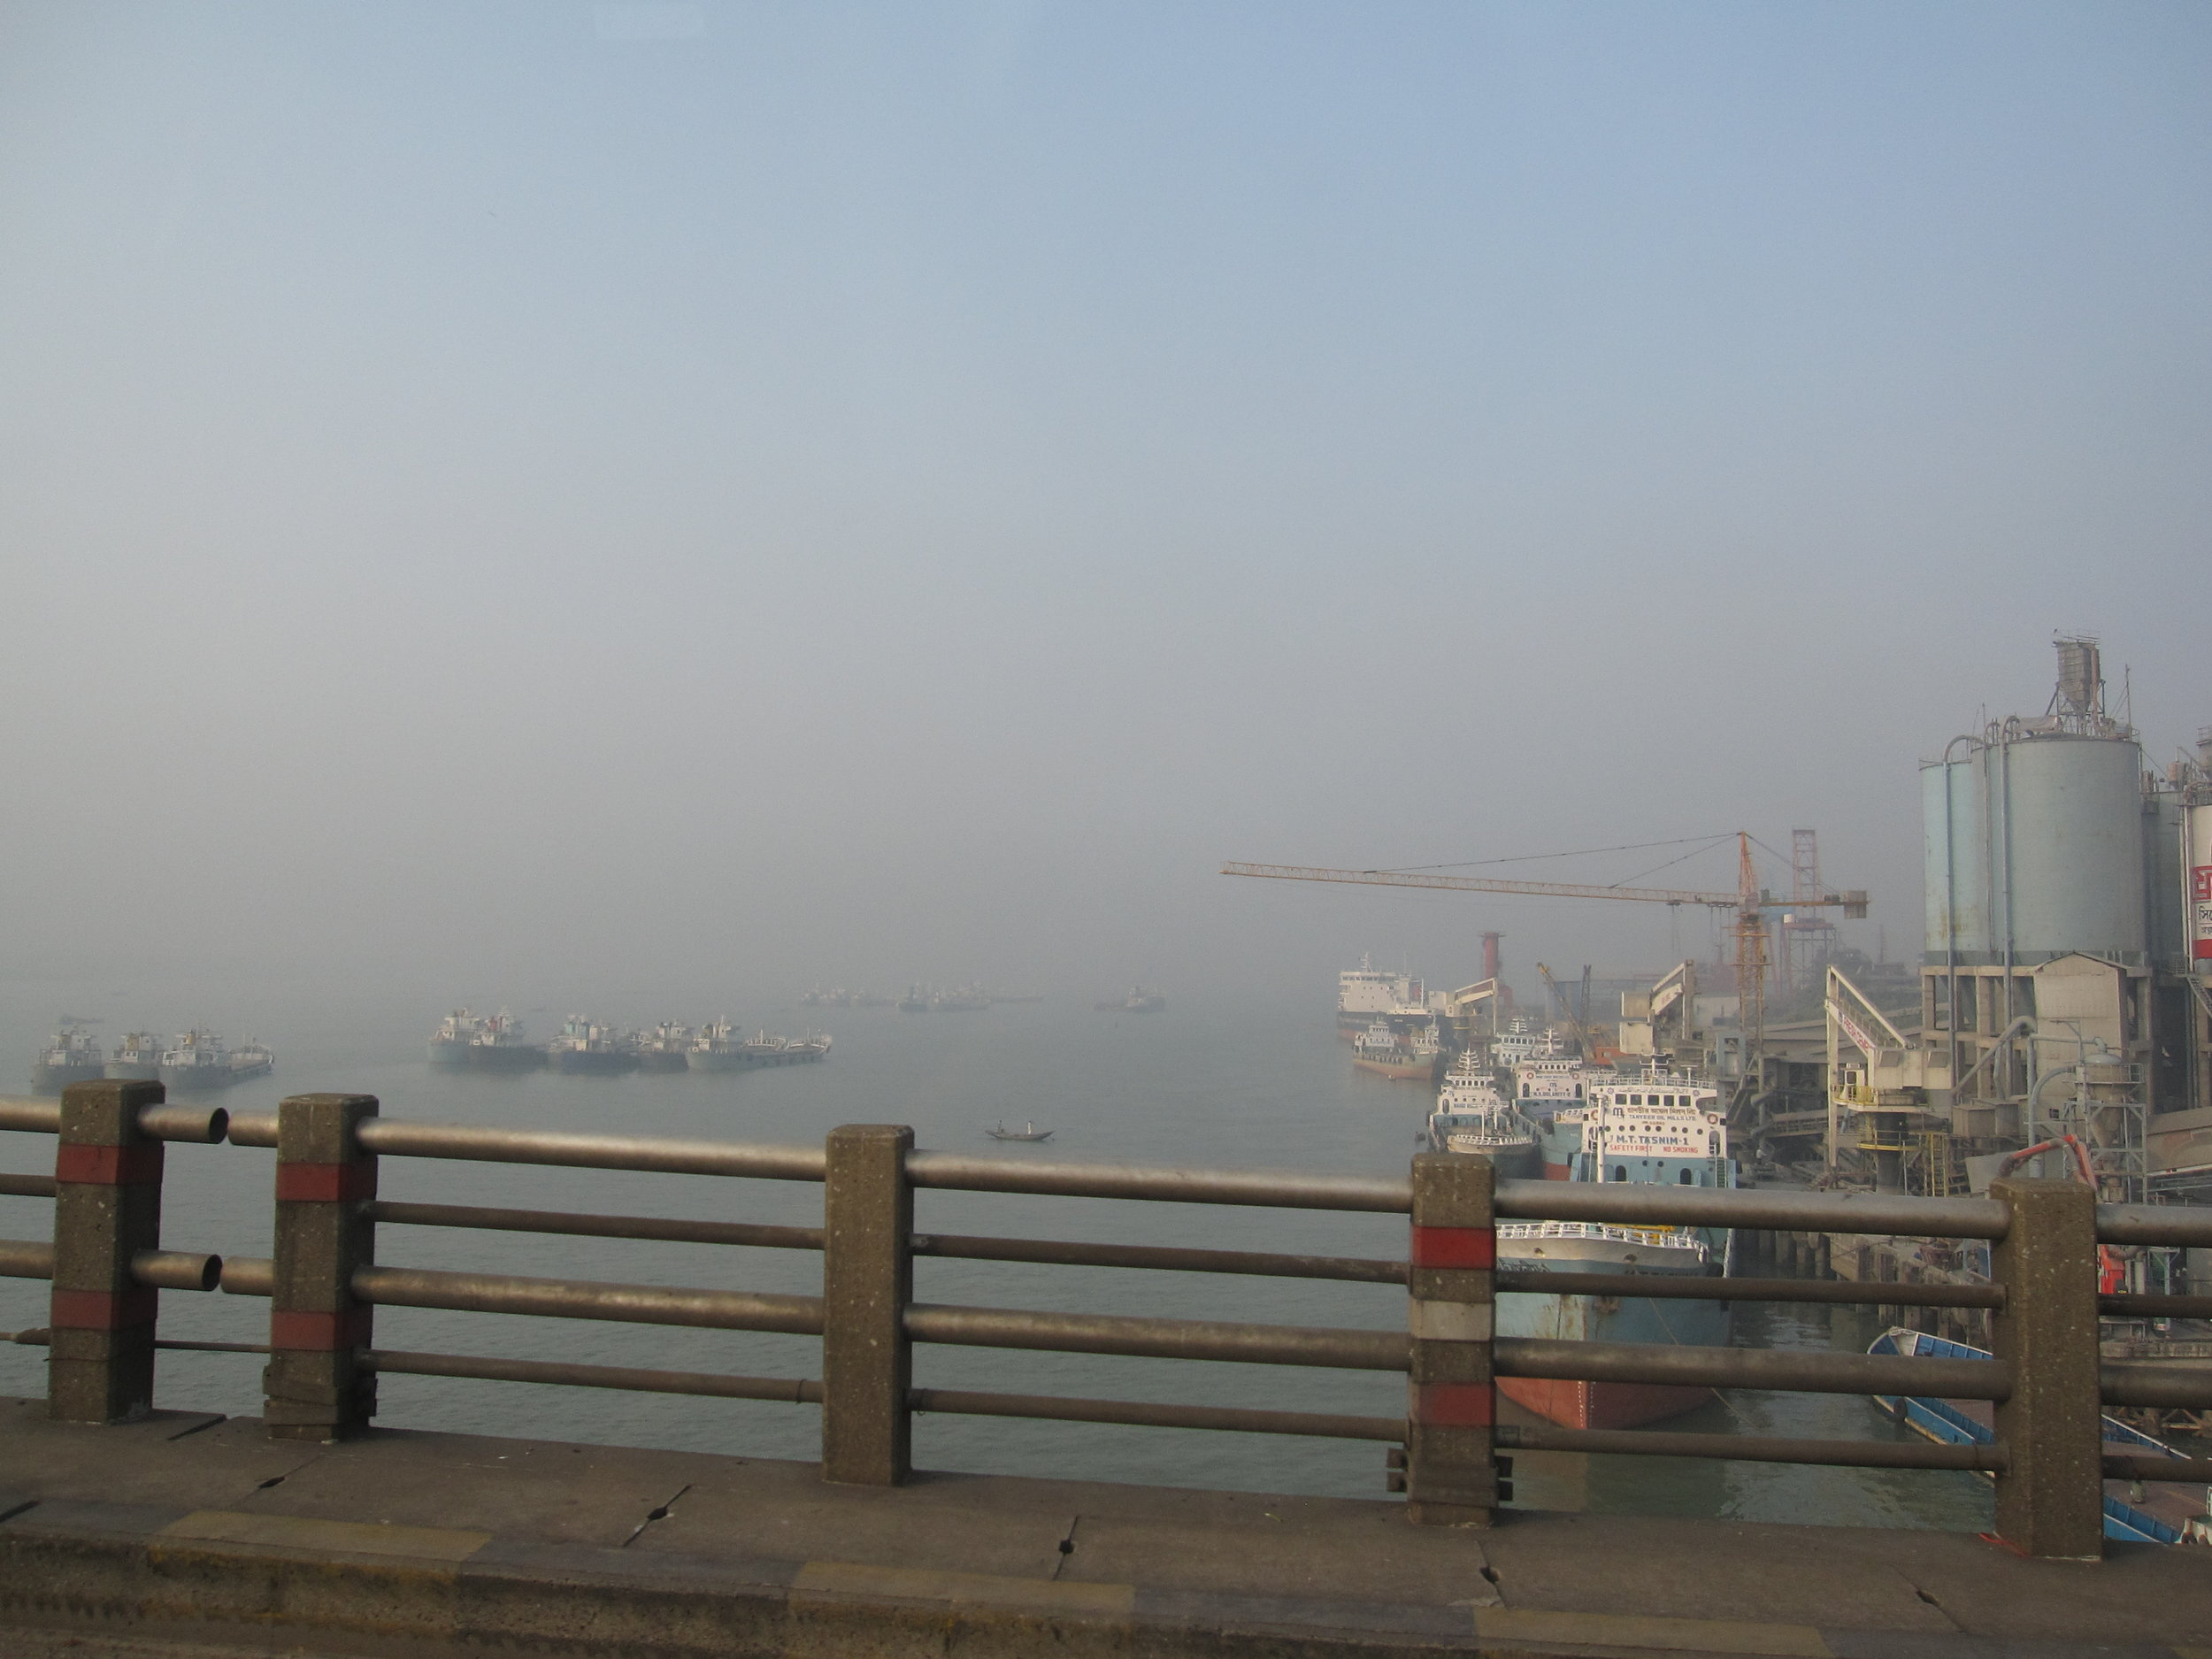 Ships on the Meghna, east of Dhaka. Rivers facilitate a huge amount of trade for rural Bangladesh, but simultaneously isolate entire regions from the prosperity bridges could bring.